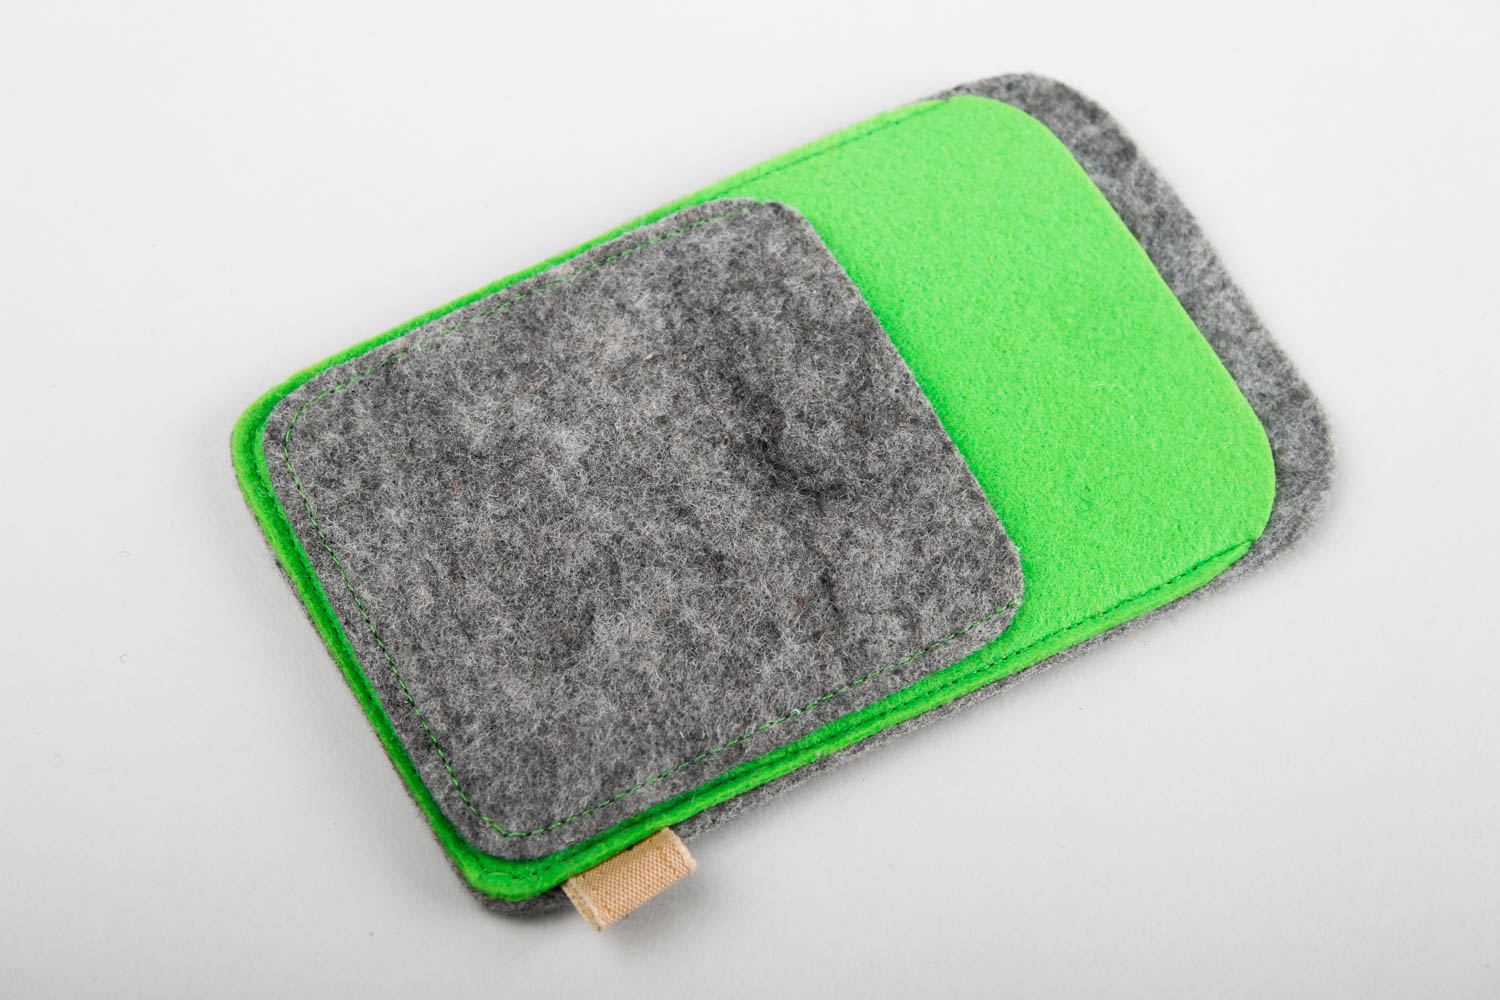 Cases for smartphones and tablets Woolen phone case handmade designer phone case gadget accessories felt goods - MADEheart.com